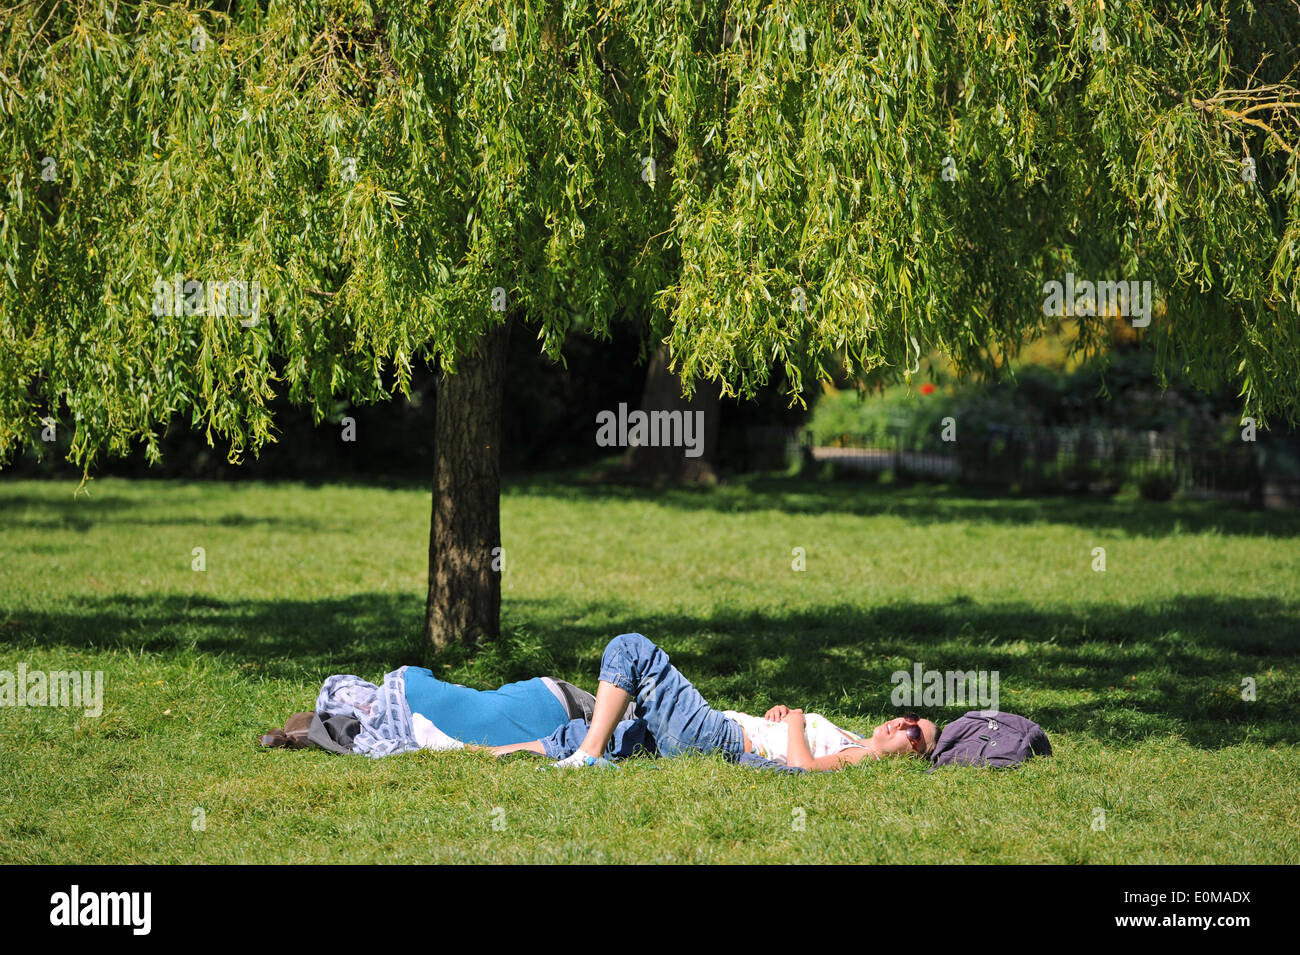 Brighton Sussex UK 16 May 2014 - Time for a sunbathe in Pavilion Gardens Brighton in the sunshine with temperatures expected to reach 23 degrees centigrade today The good weather is expected to last over the weekend  Photograph taken by Simon Dack/Alamy Live News - Stock Image